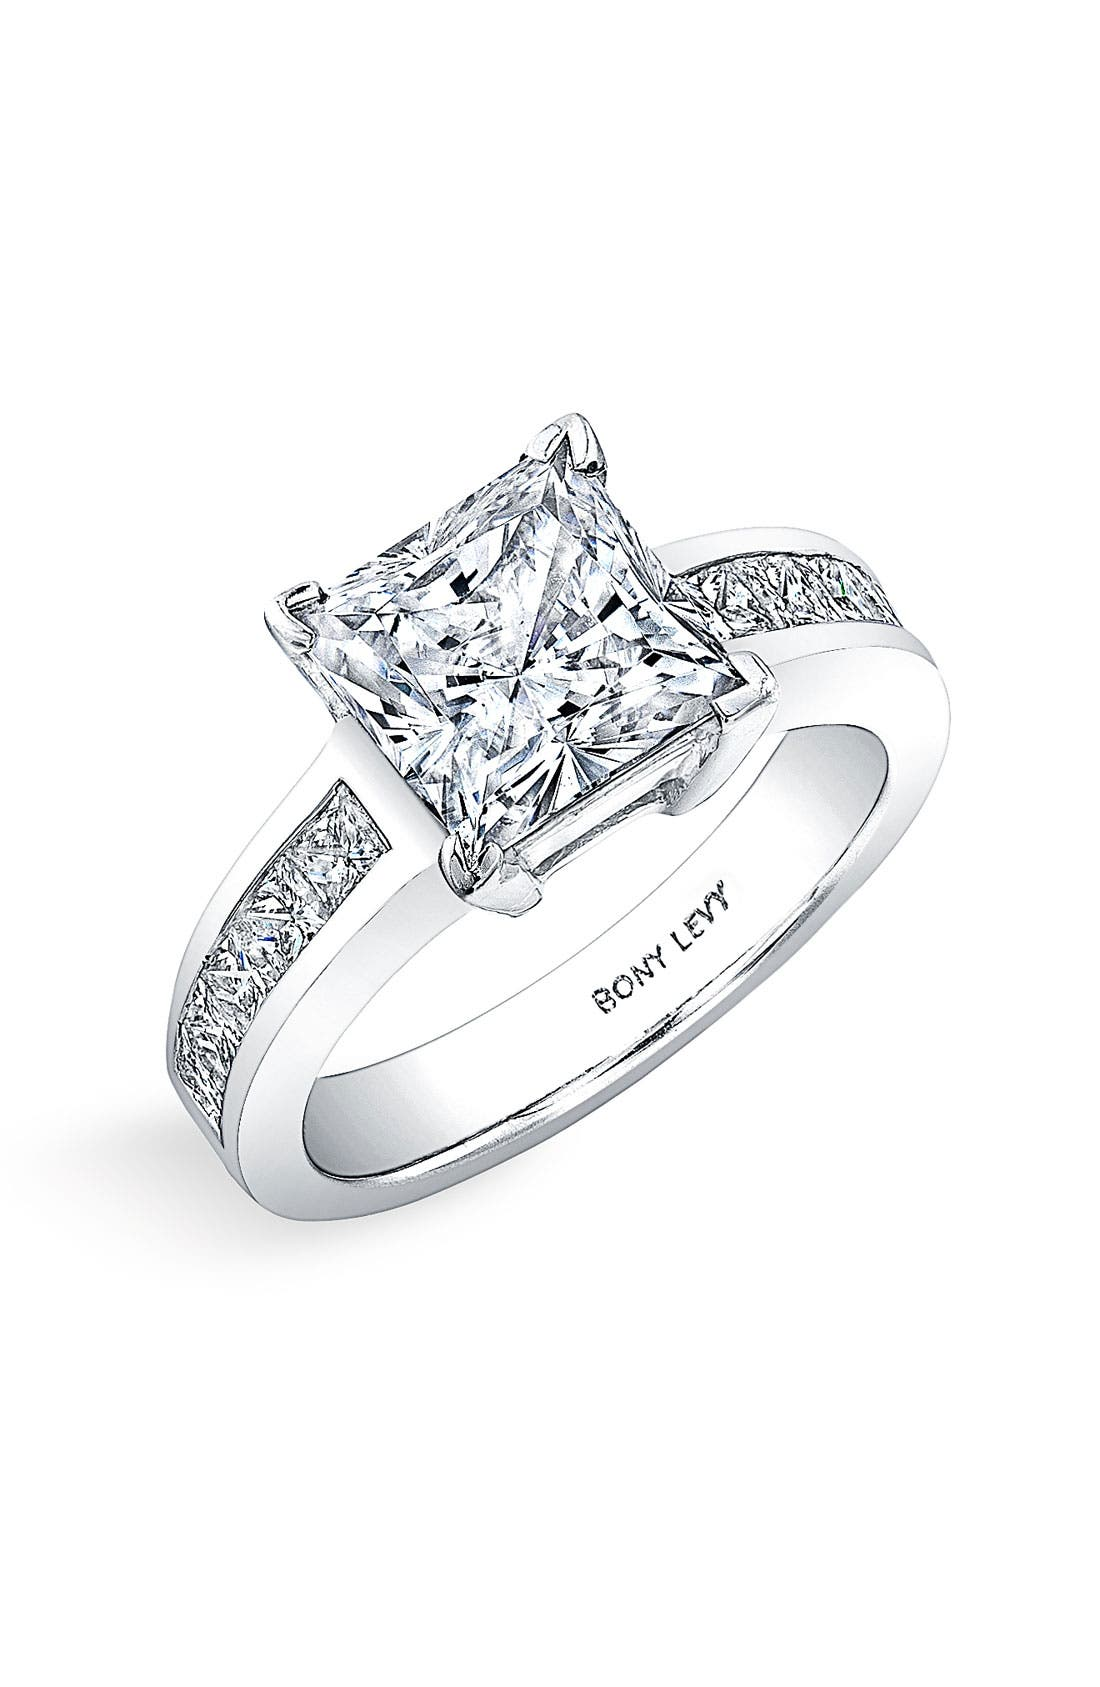 Alternate Image 1 Selected - Bony Levy Princess Cut Diamond Engagement Ring Setting (Nordstrom Exclusive)